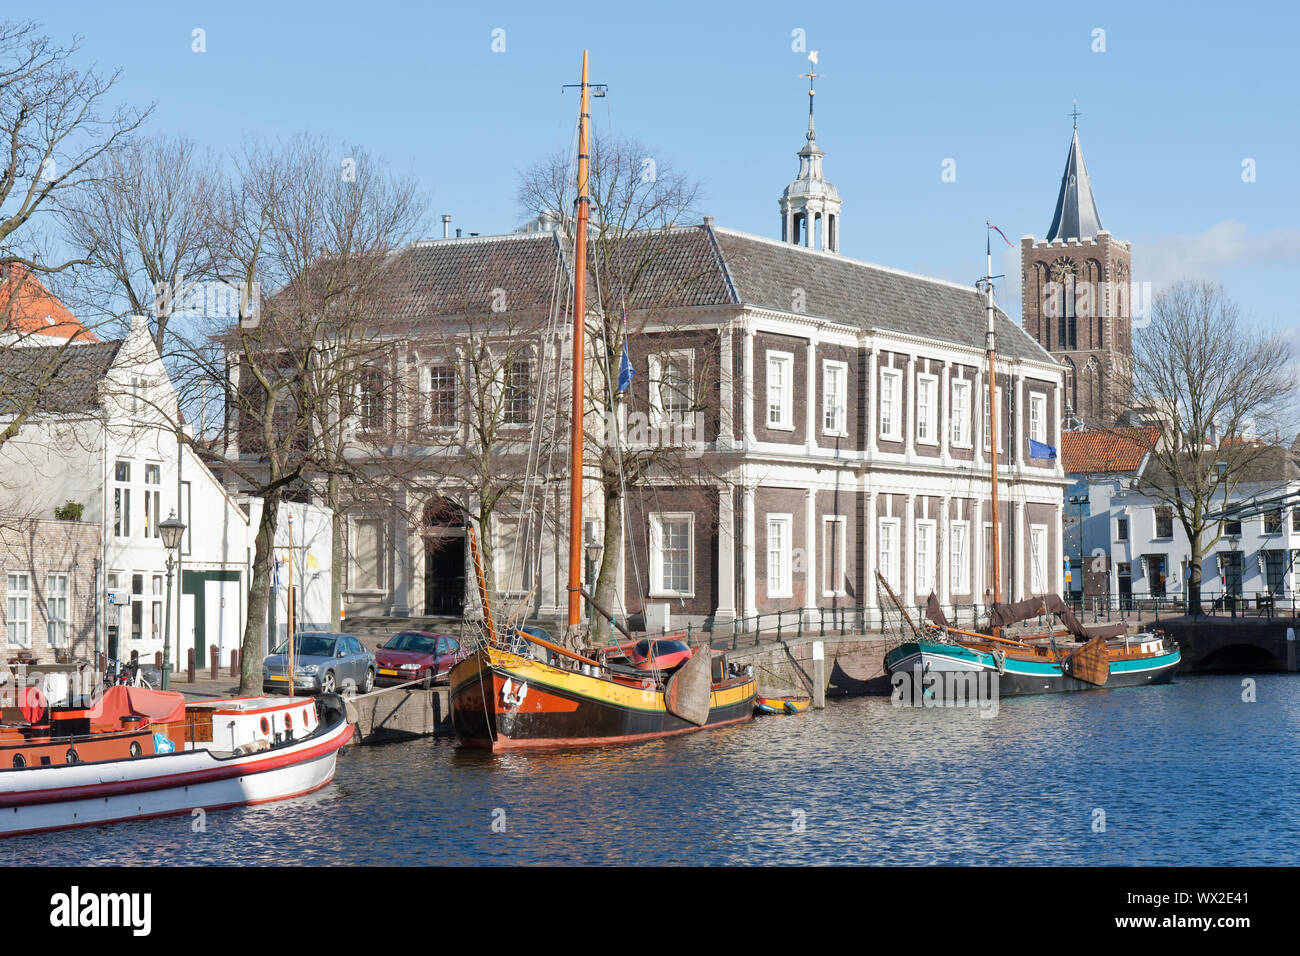 Traditional wooden barges in old historic harbor of Schiedam, The Netherlands Stock Photo